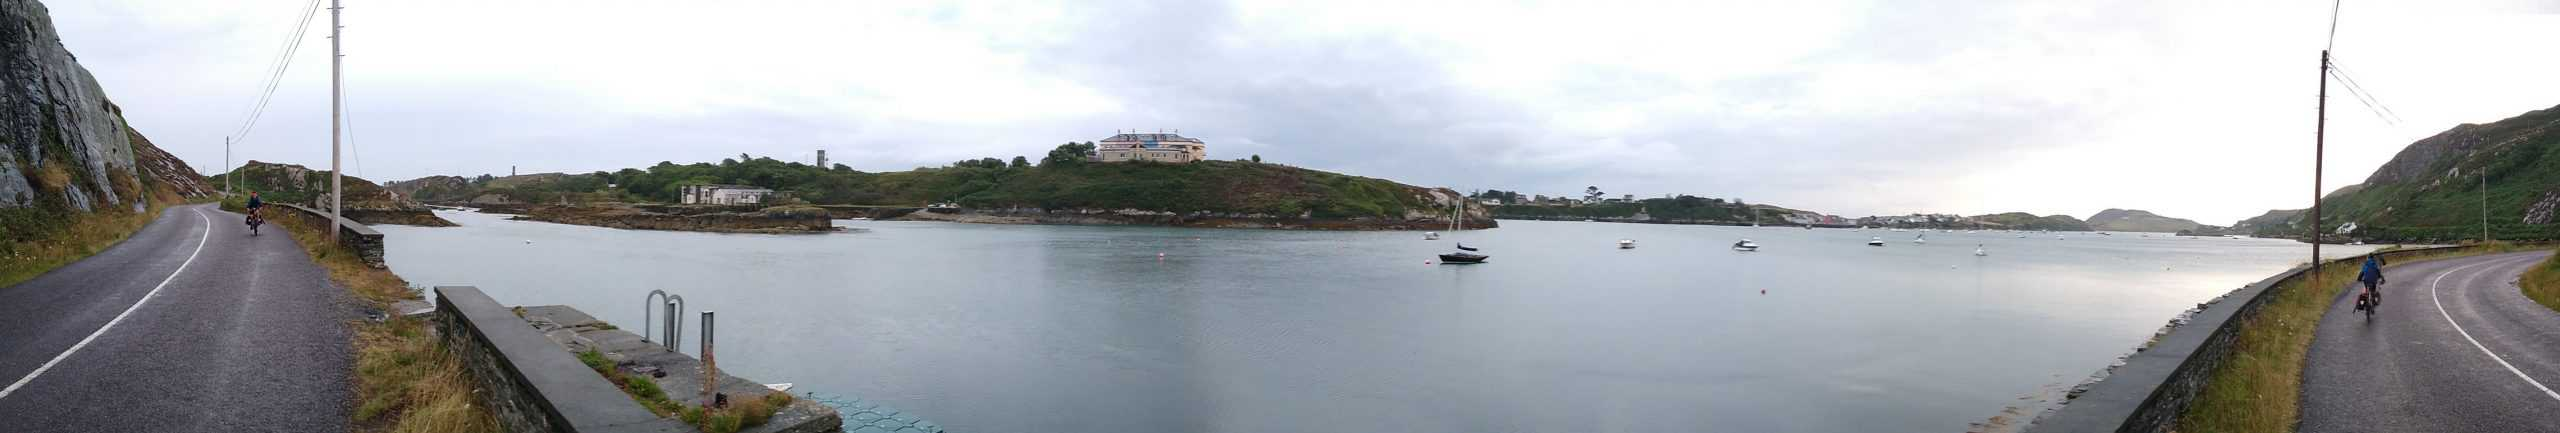 Panorama of sheltered inlet